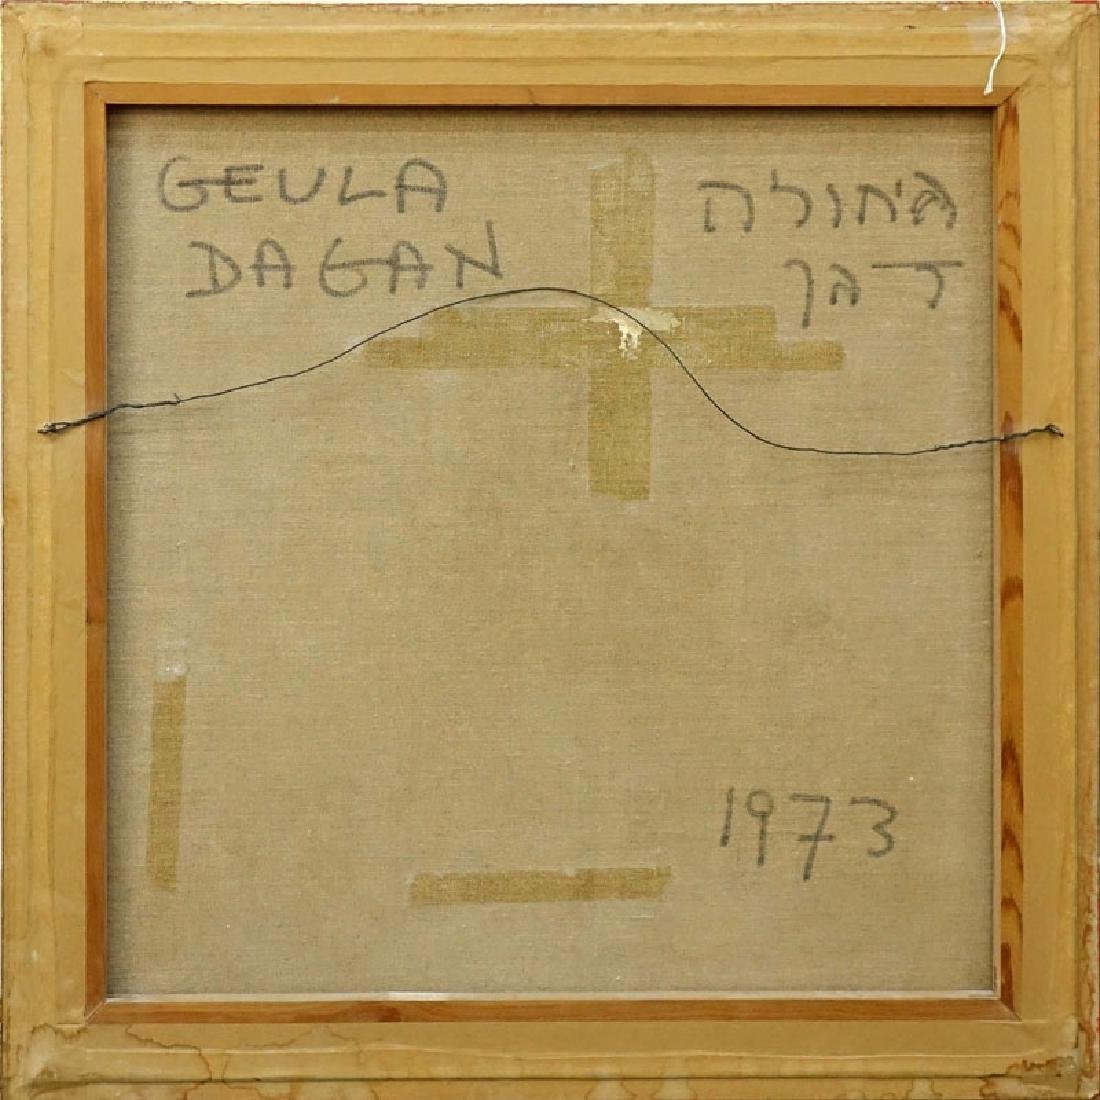 Geula Dagan, Israeli (b.1925) Oil on Canvas - 4